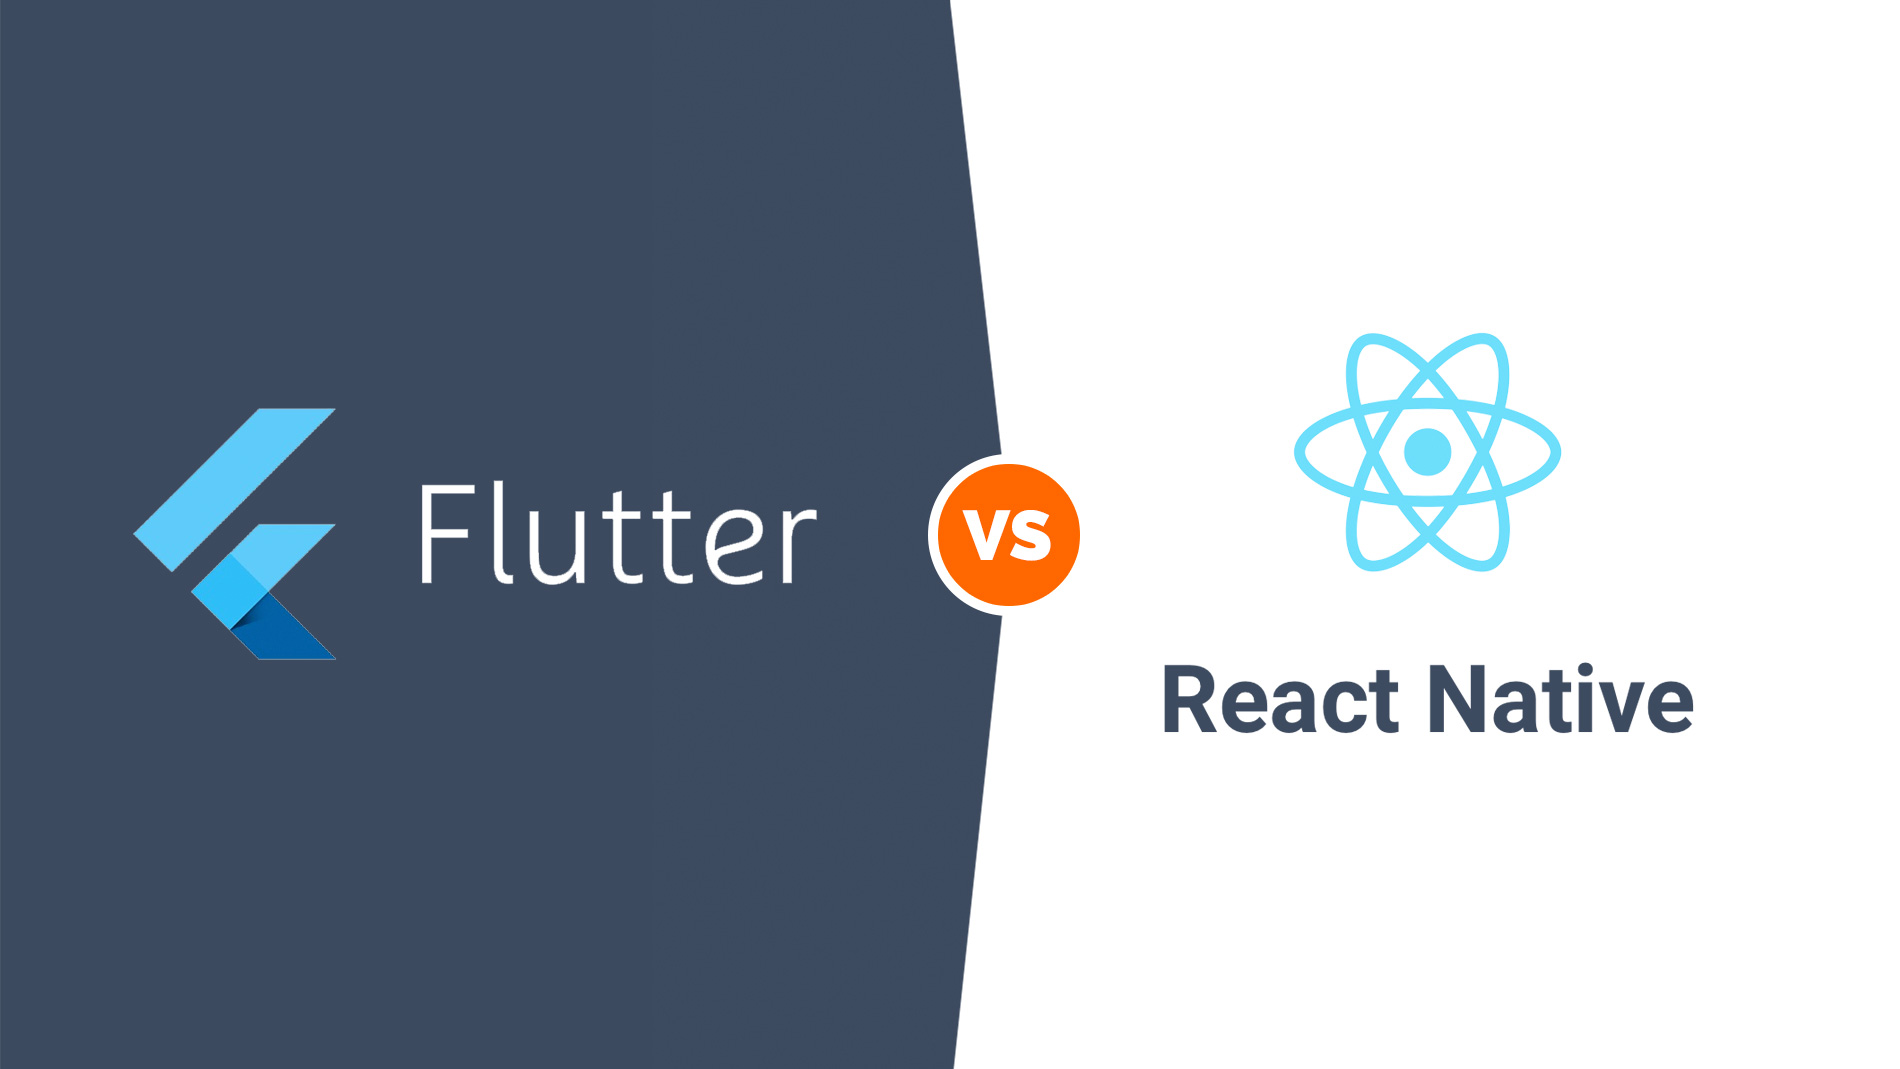 تفاوت React Native با فلاتر چیست؟